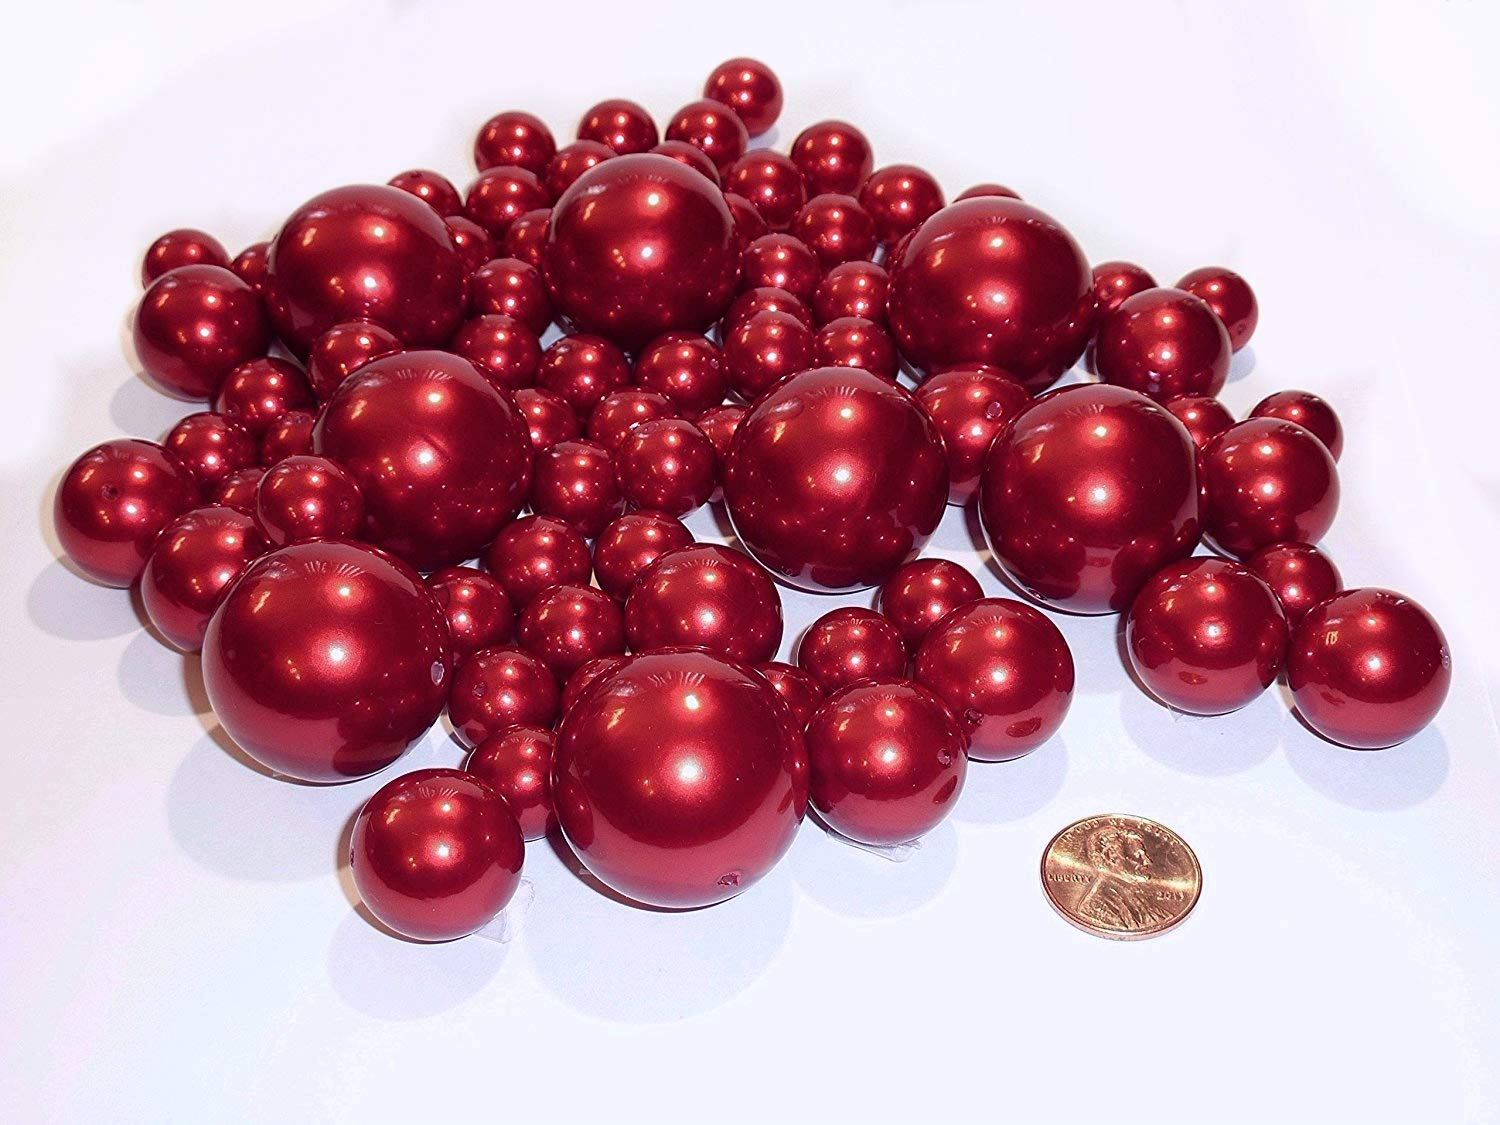 All Red Pearls - Jumbo and Assorted Sizes Vase Fillers for Decorating Centerpieces - To Float the Pearls - Order with Transparent Water Gels